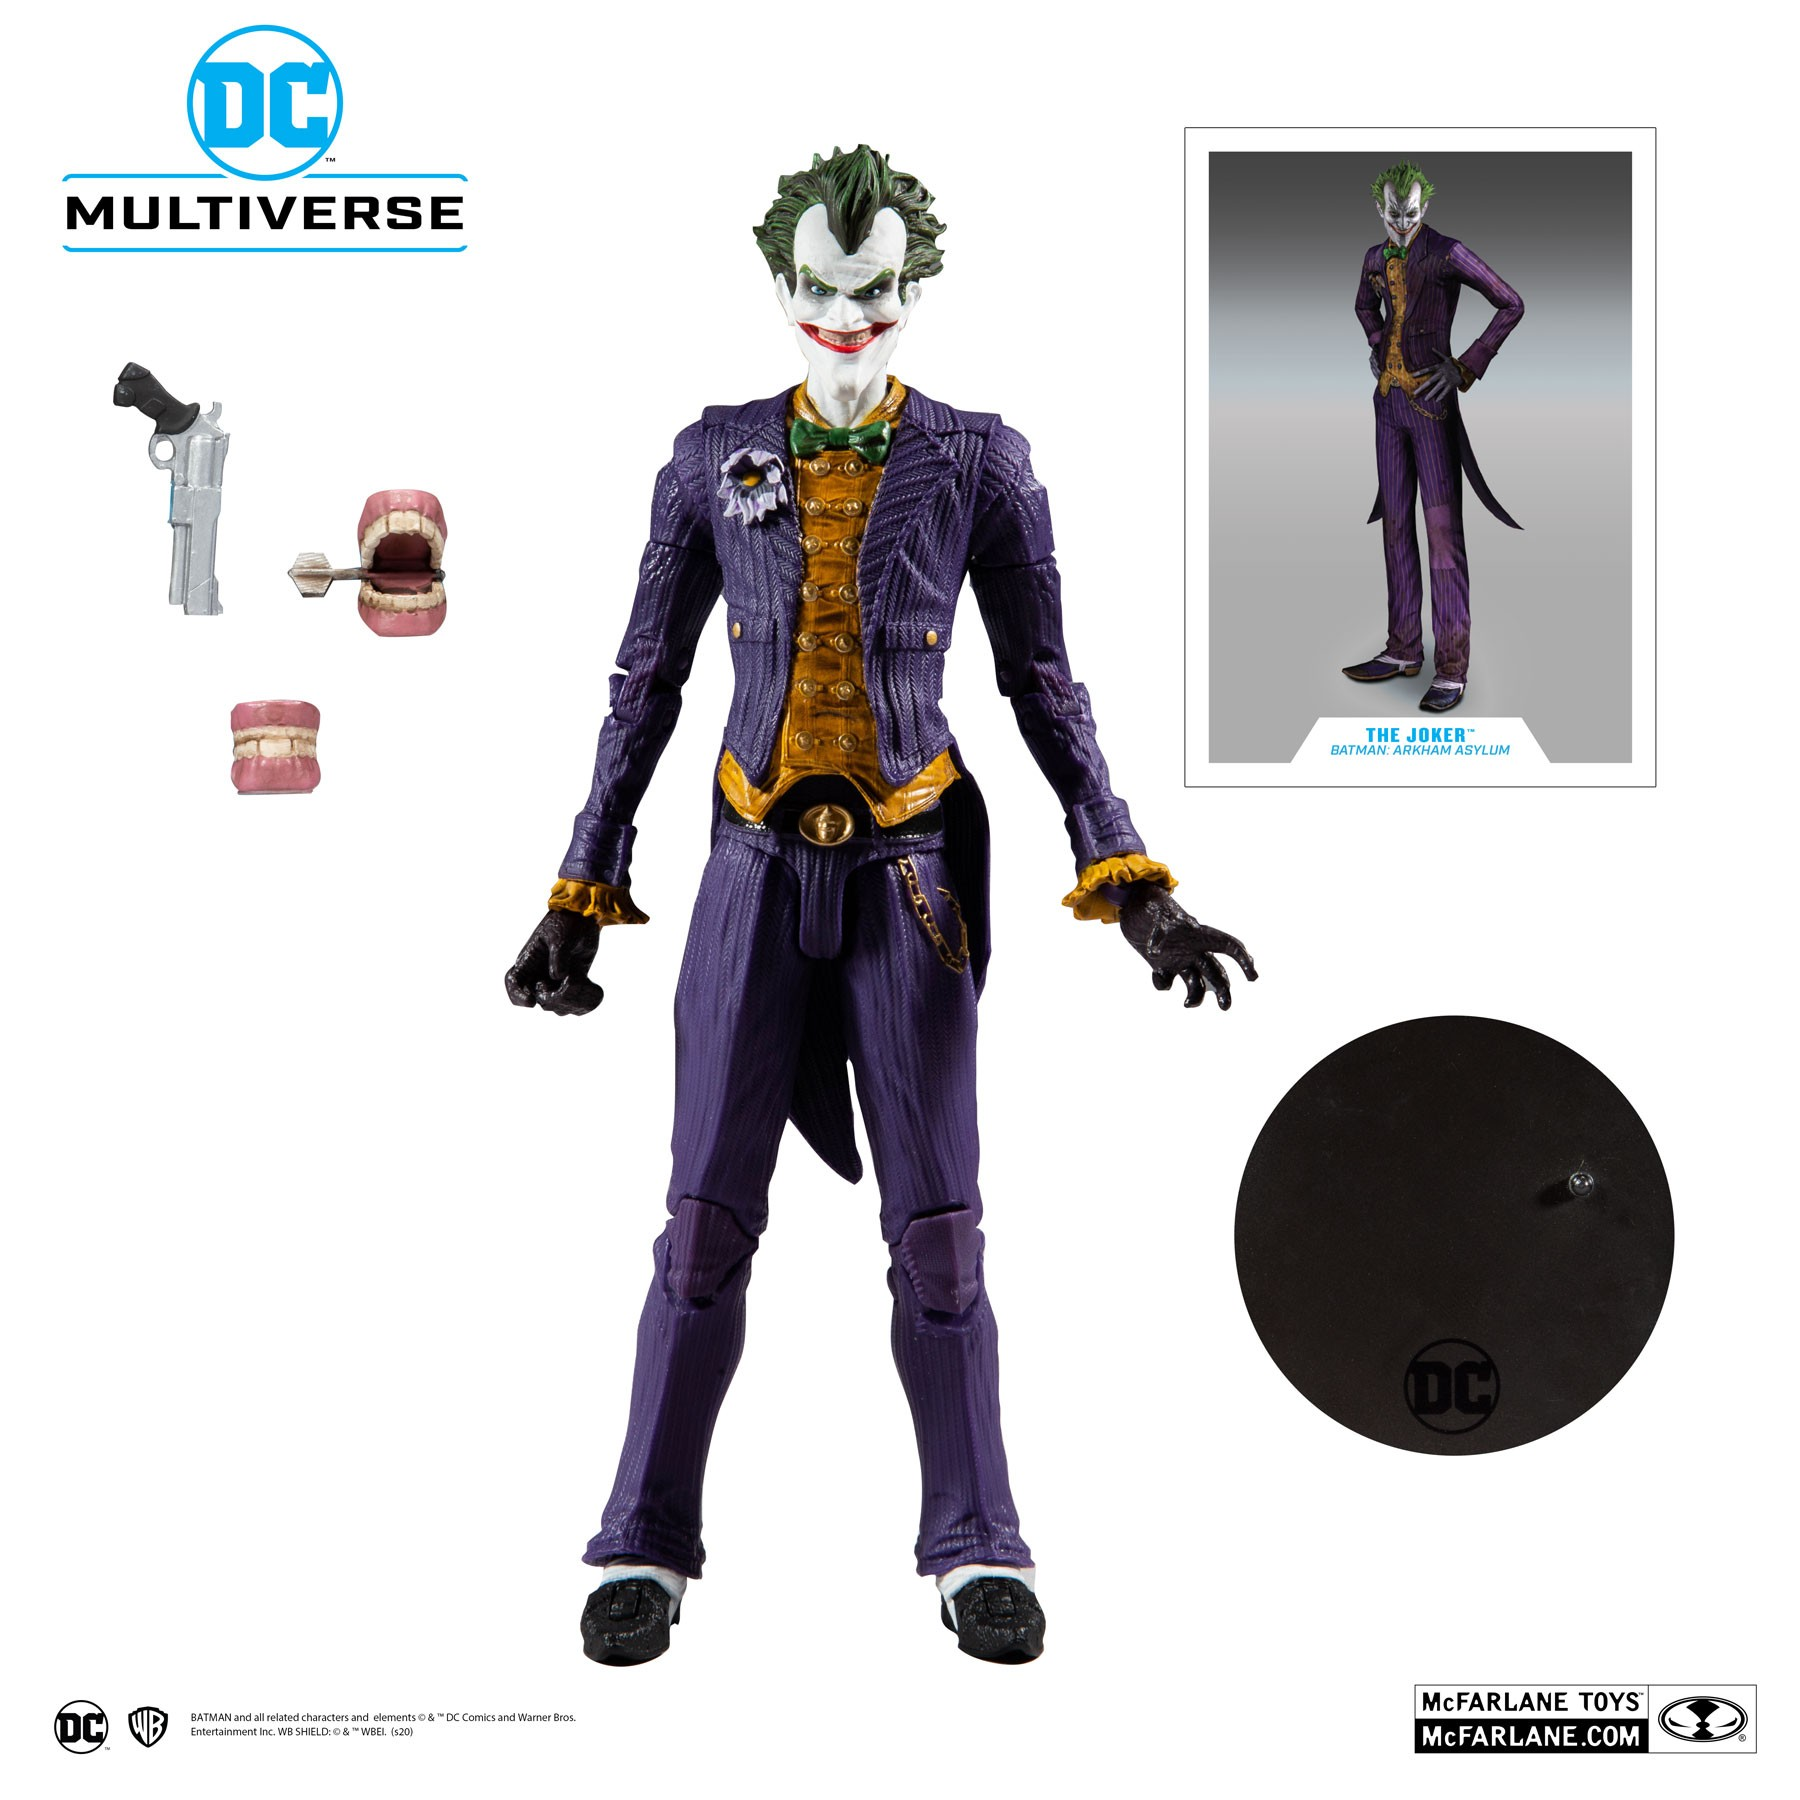 Action Figure Coringa (The Joker): Batman Arkham Asylum (DC Multiverse) - McFarlane Toys